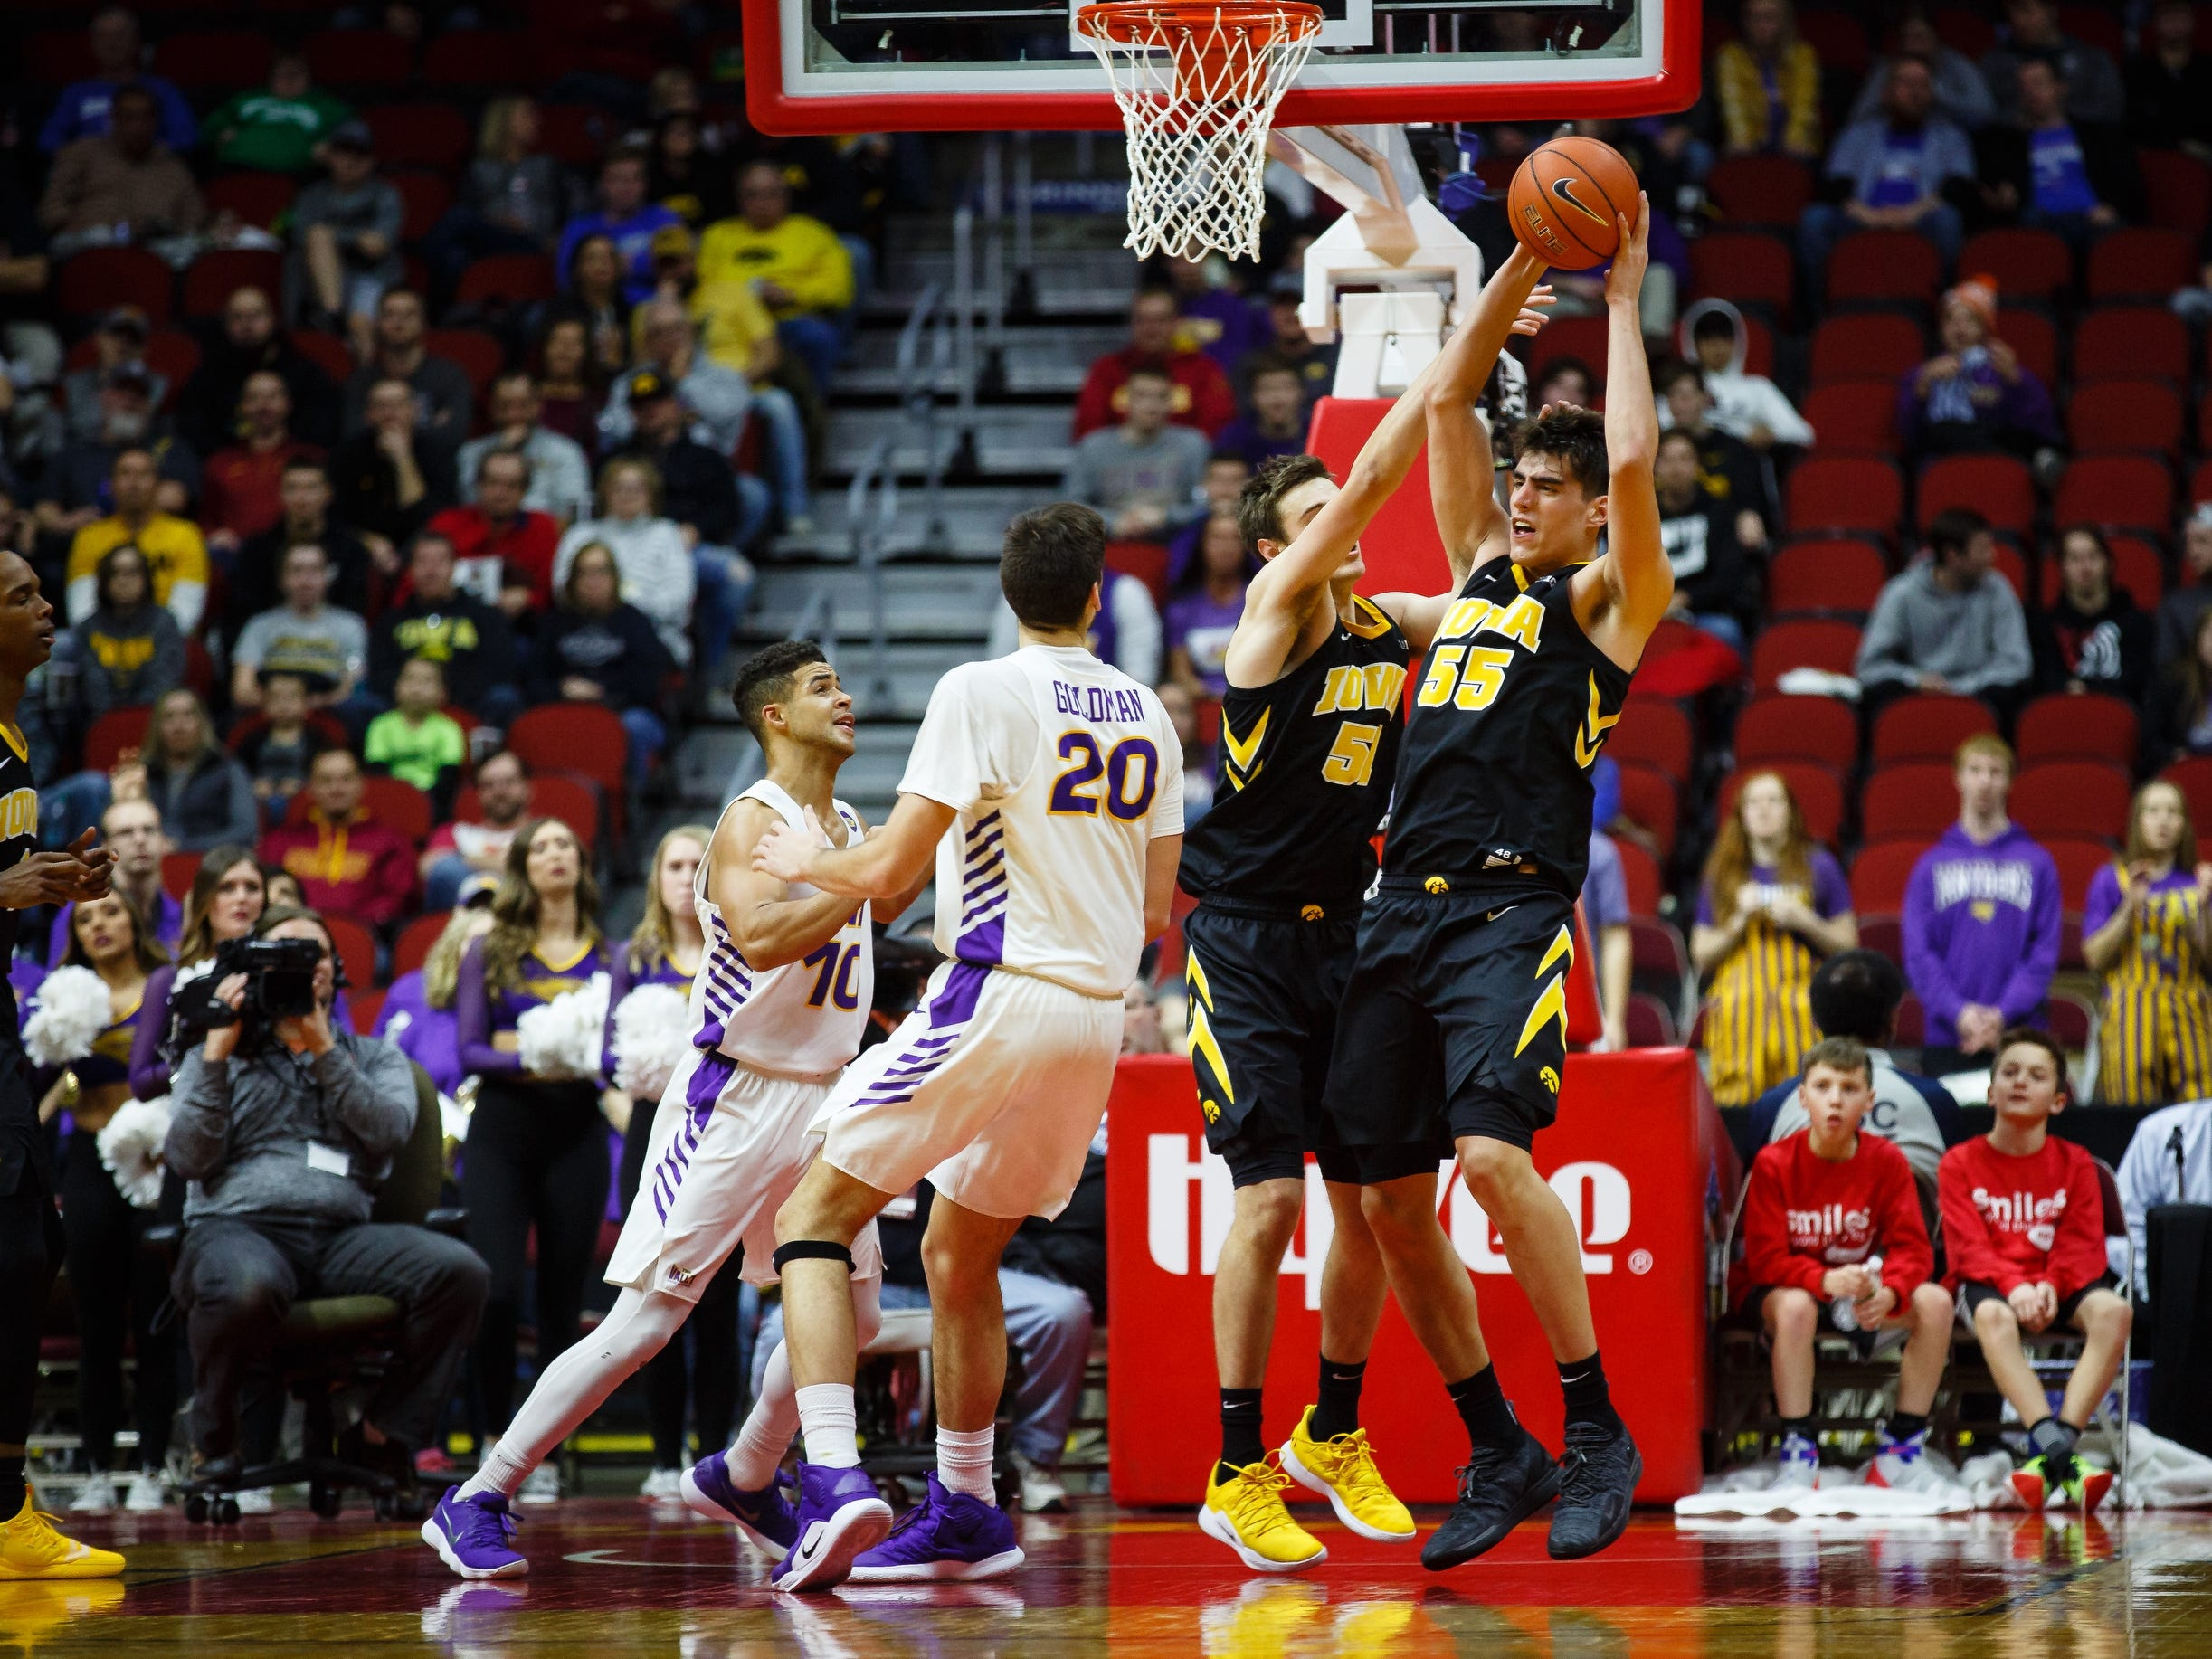 Iowa's Luka Garza (55) gets a rebound during their basketball game at the Hy-Vee Classic on Saturday, Dec. 15, 2018, in Des Moines. Iowa would go on to defeat UNI 77-54.